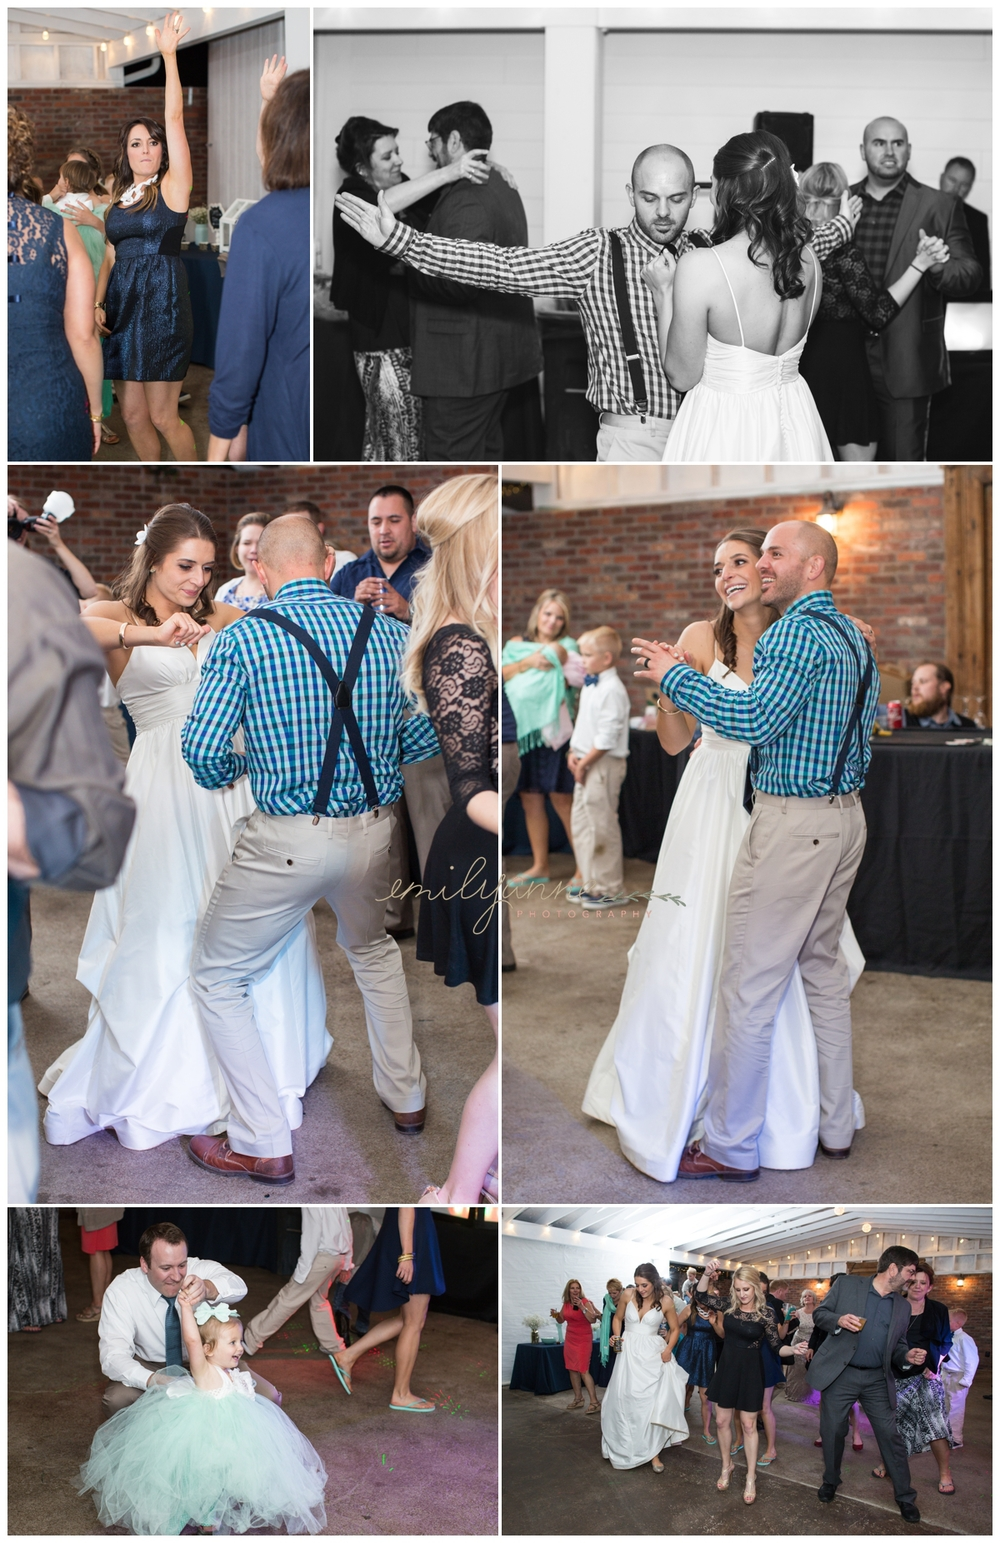 Ralston's Crossing Wedding || www.emilyanne-photography.com